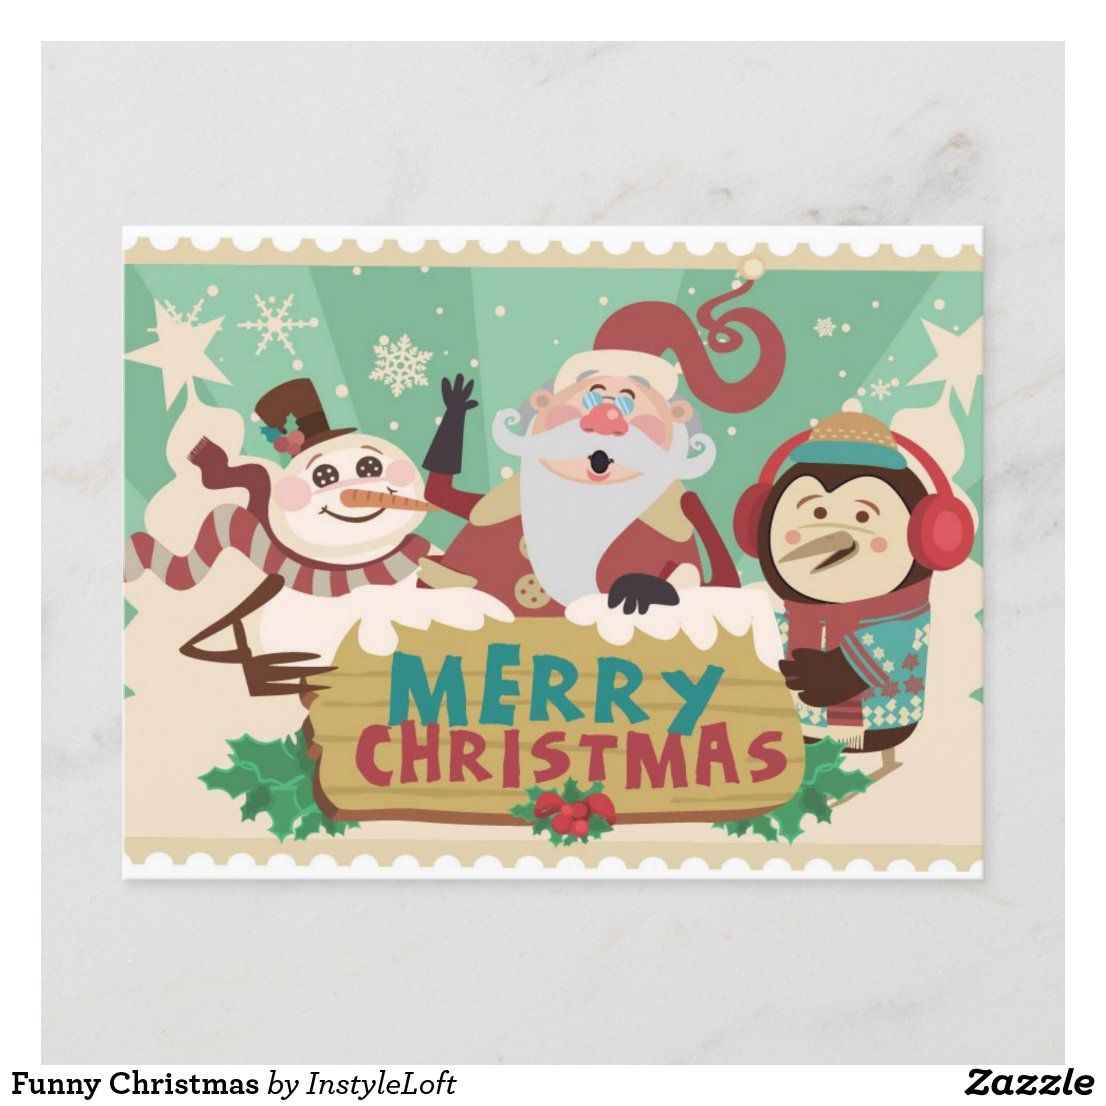 Funny Christmas Holiday Postcard Zazzle Com Christmas Cards Free Snowman Christmas Cards Christmas Card Templates Free